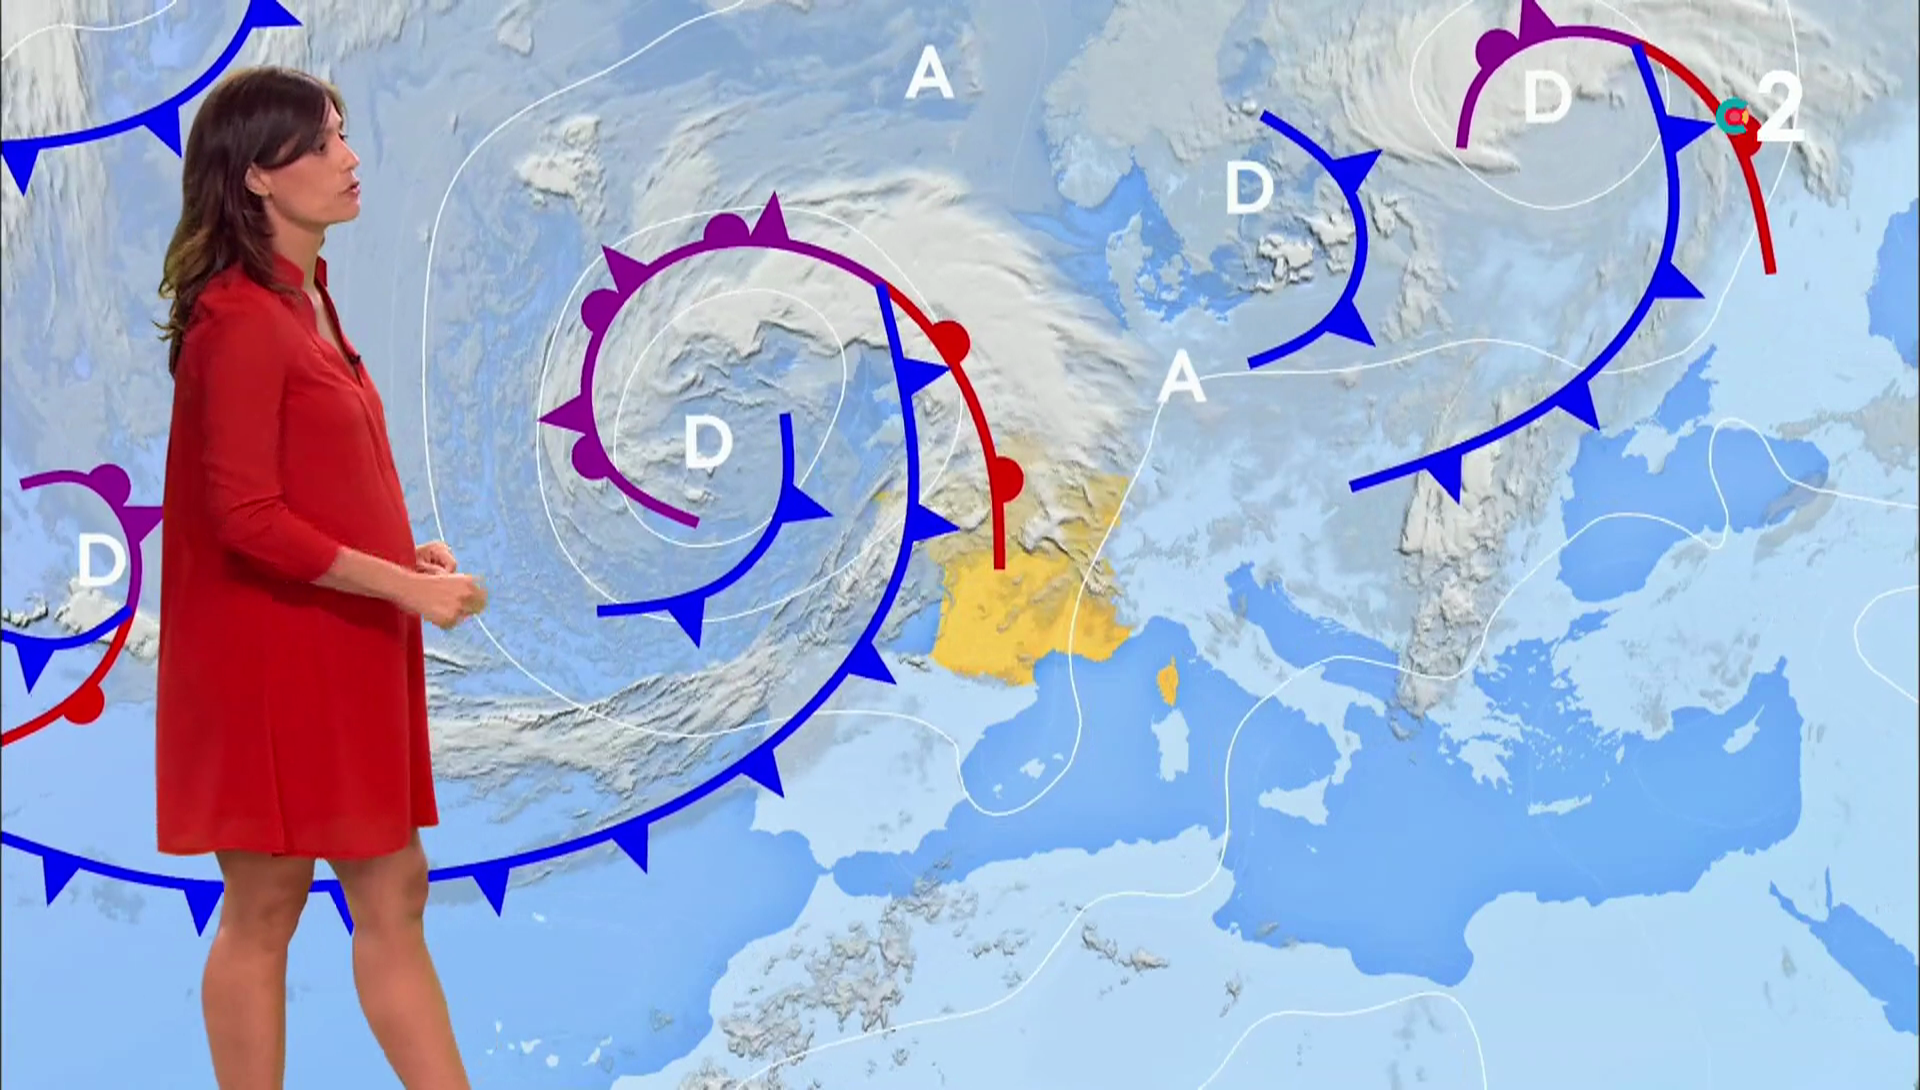 taniayoung02.2019_08_09_meteo13hFRANCE2